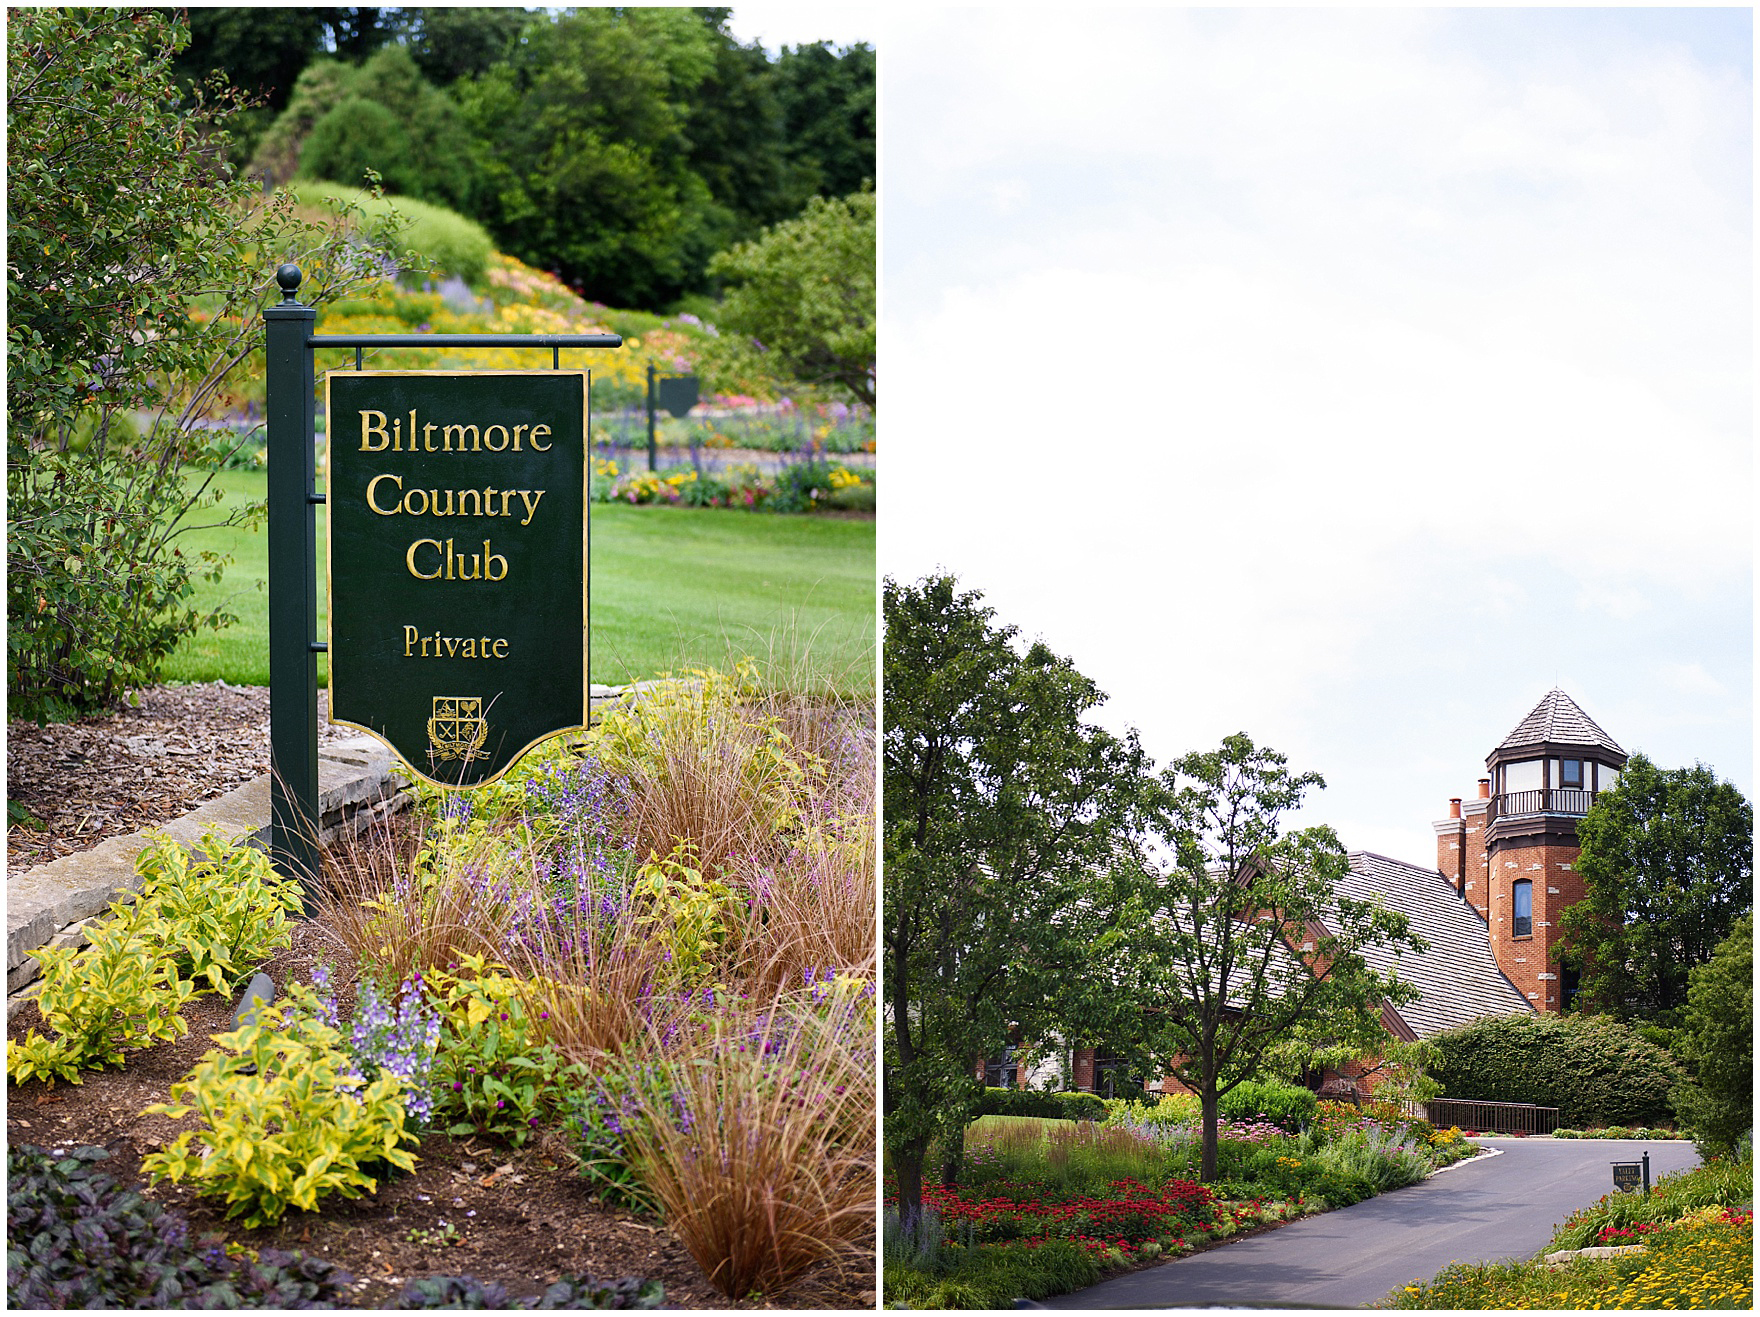 Details of the club sign and entrance for a Biltmore Country Club Barrington wedding.